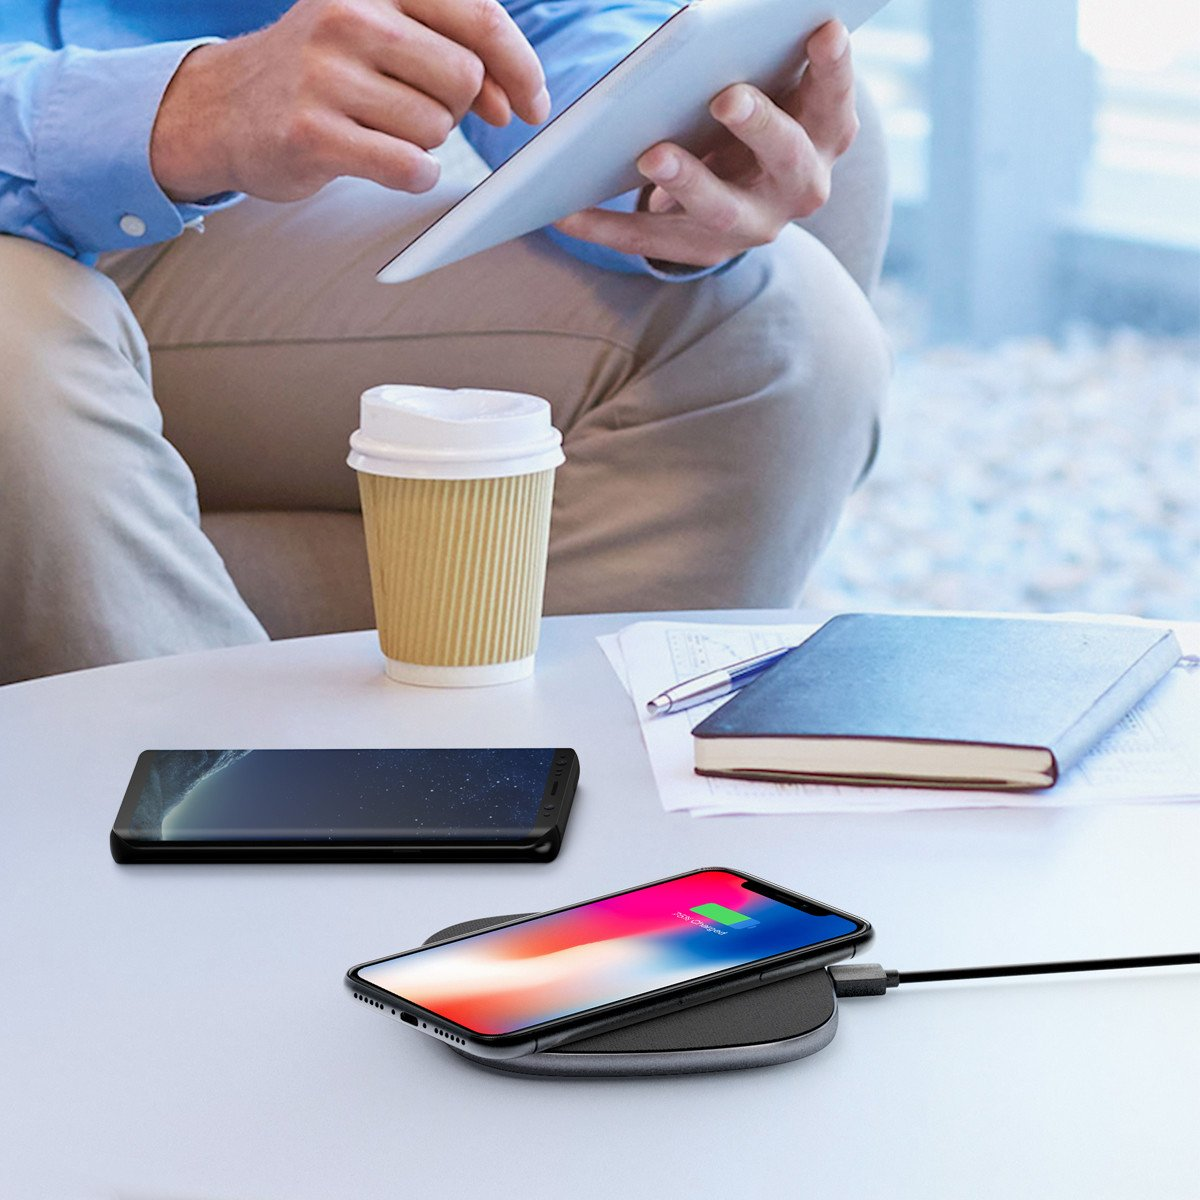 POWERADD Cargador Inálambrico Rápido, Carga Estándar Fast Wireless Charger para iPhone 8, 8 Plus, iPhone X, Samsung S9 Plus S9 S8 Plus S8 Note8 S7, iPhone X 8 Plus 8, Xiaomi Mix 2S, etc, Color Negro